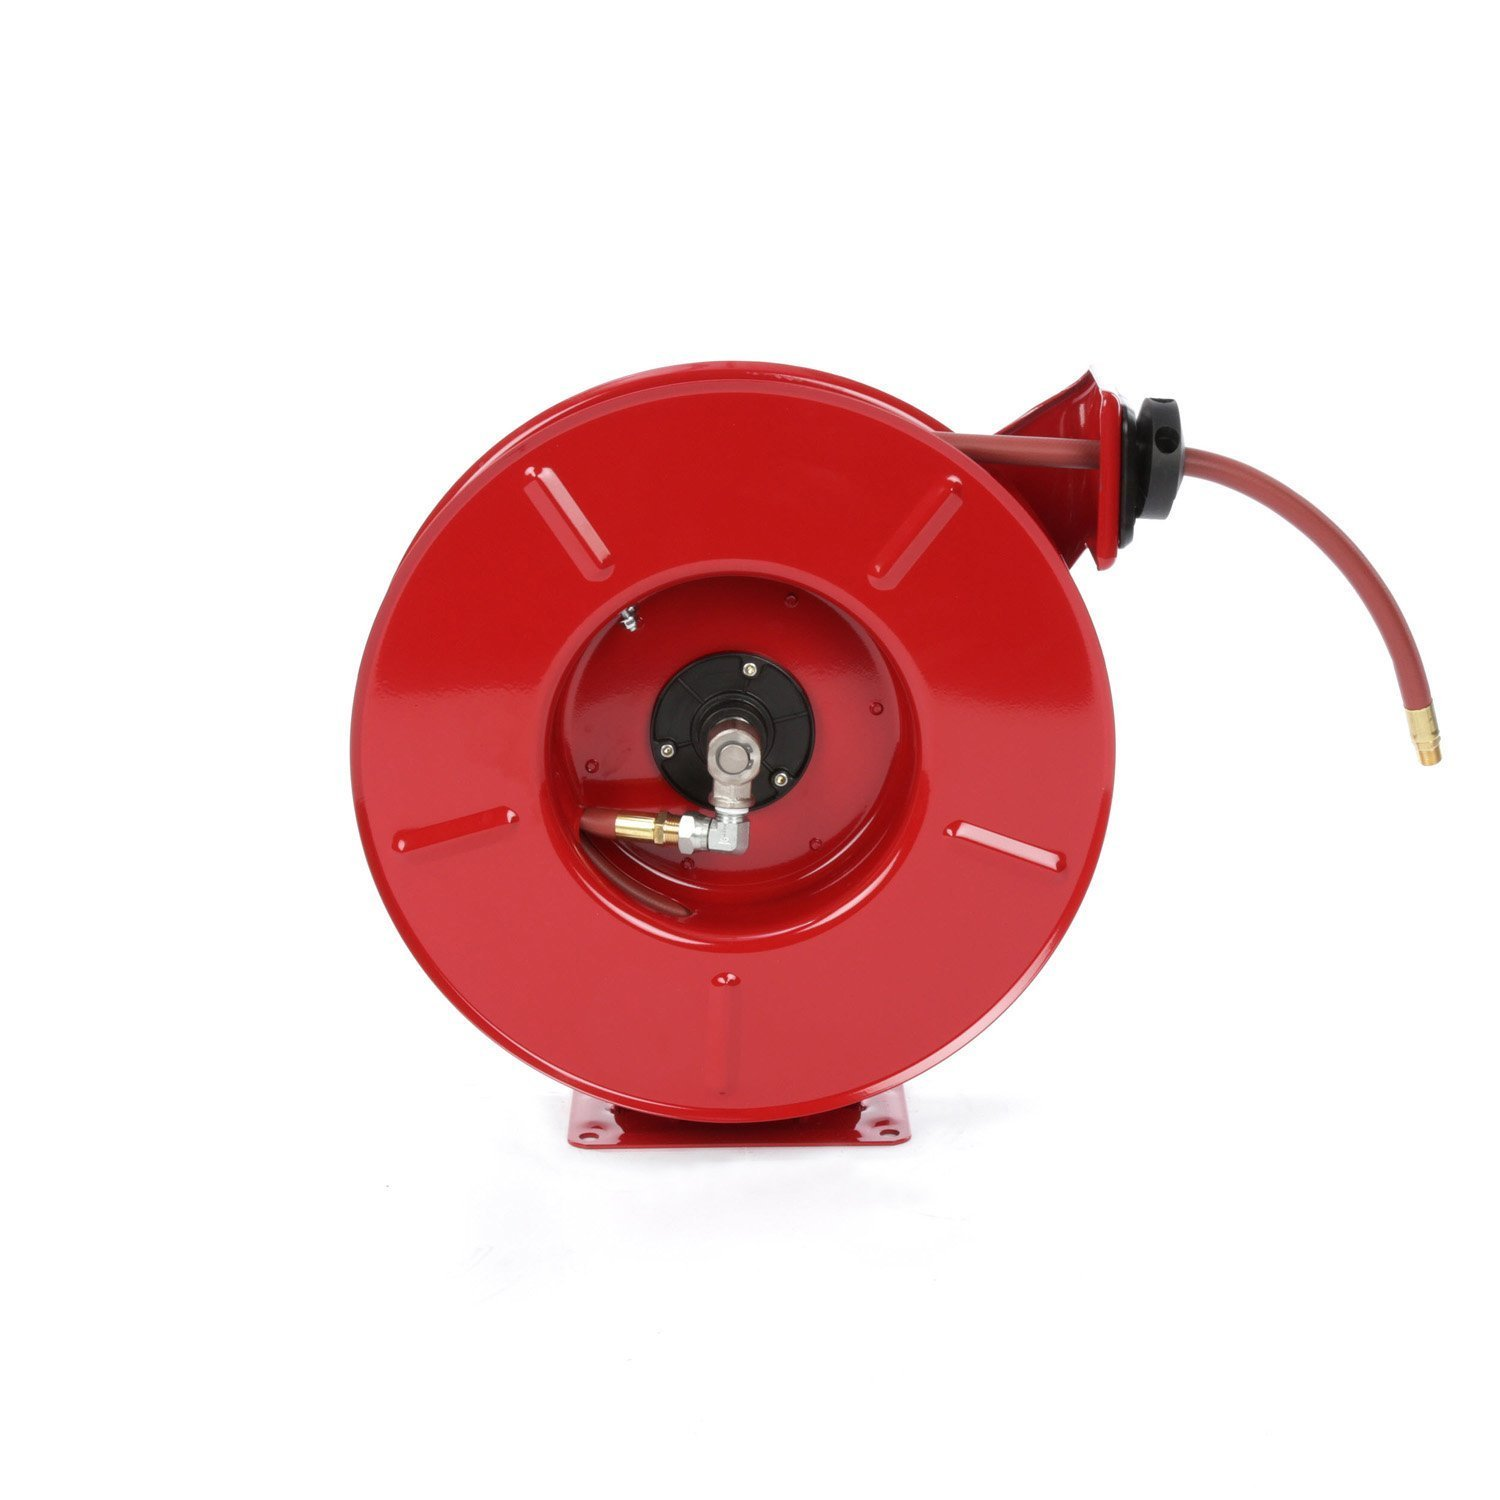 Heavy Duty Spring Rewind Hose Reel, 3/8'' x 70' 300 PSI by Reelcraft (Image #4)